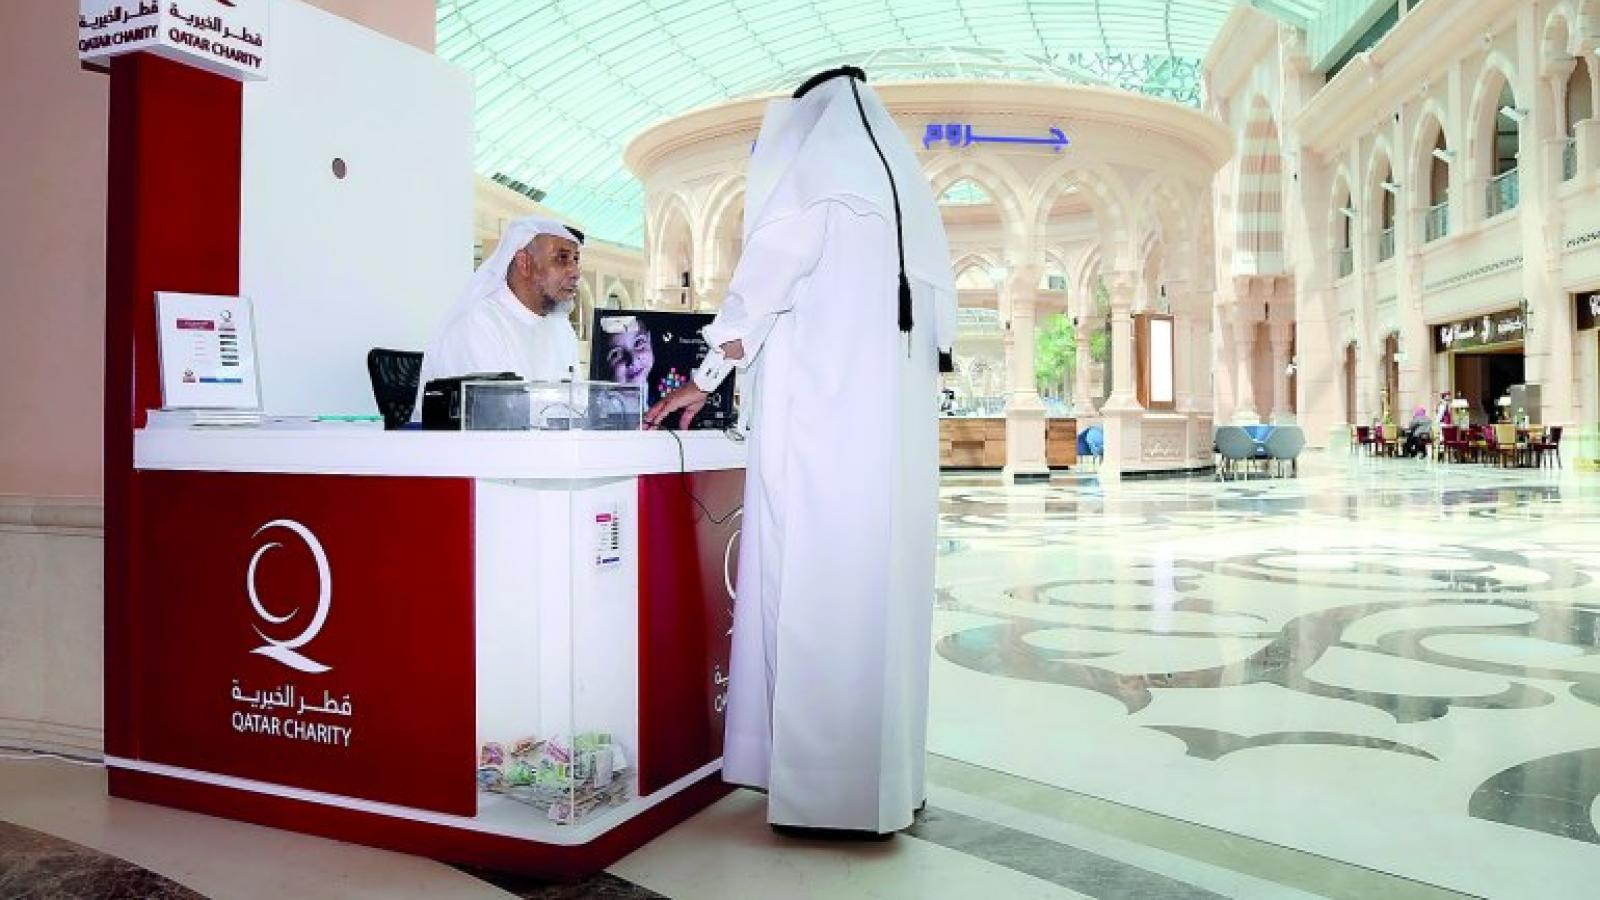 How to pay your Zakat al Fitr in Qatar